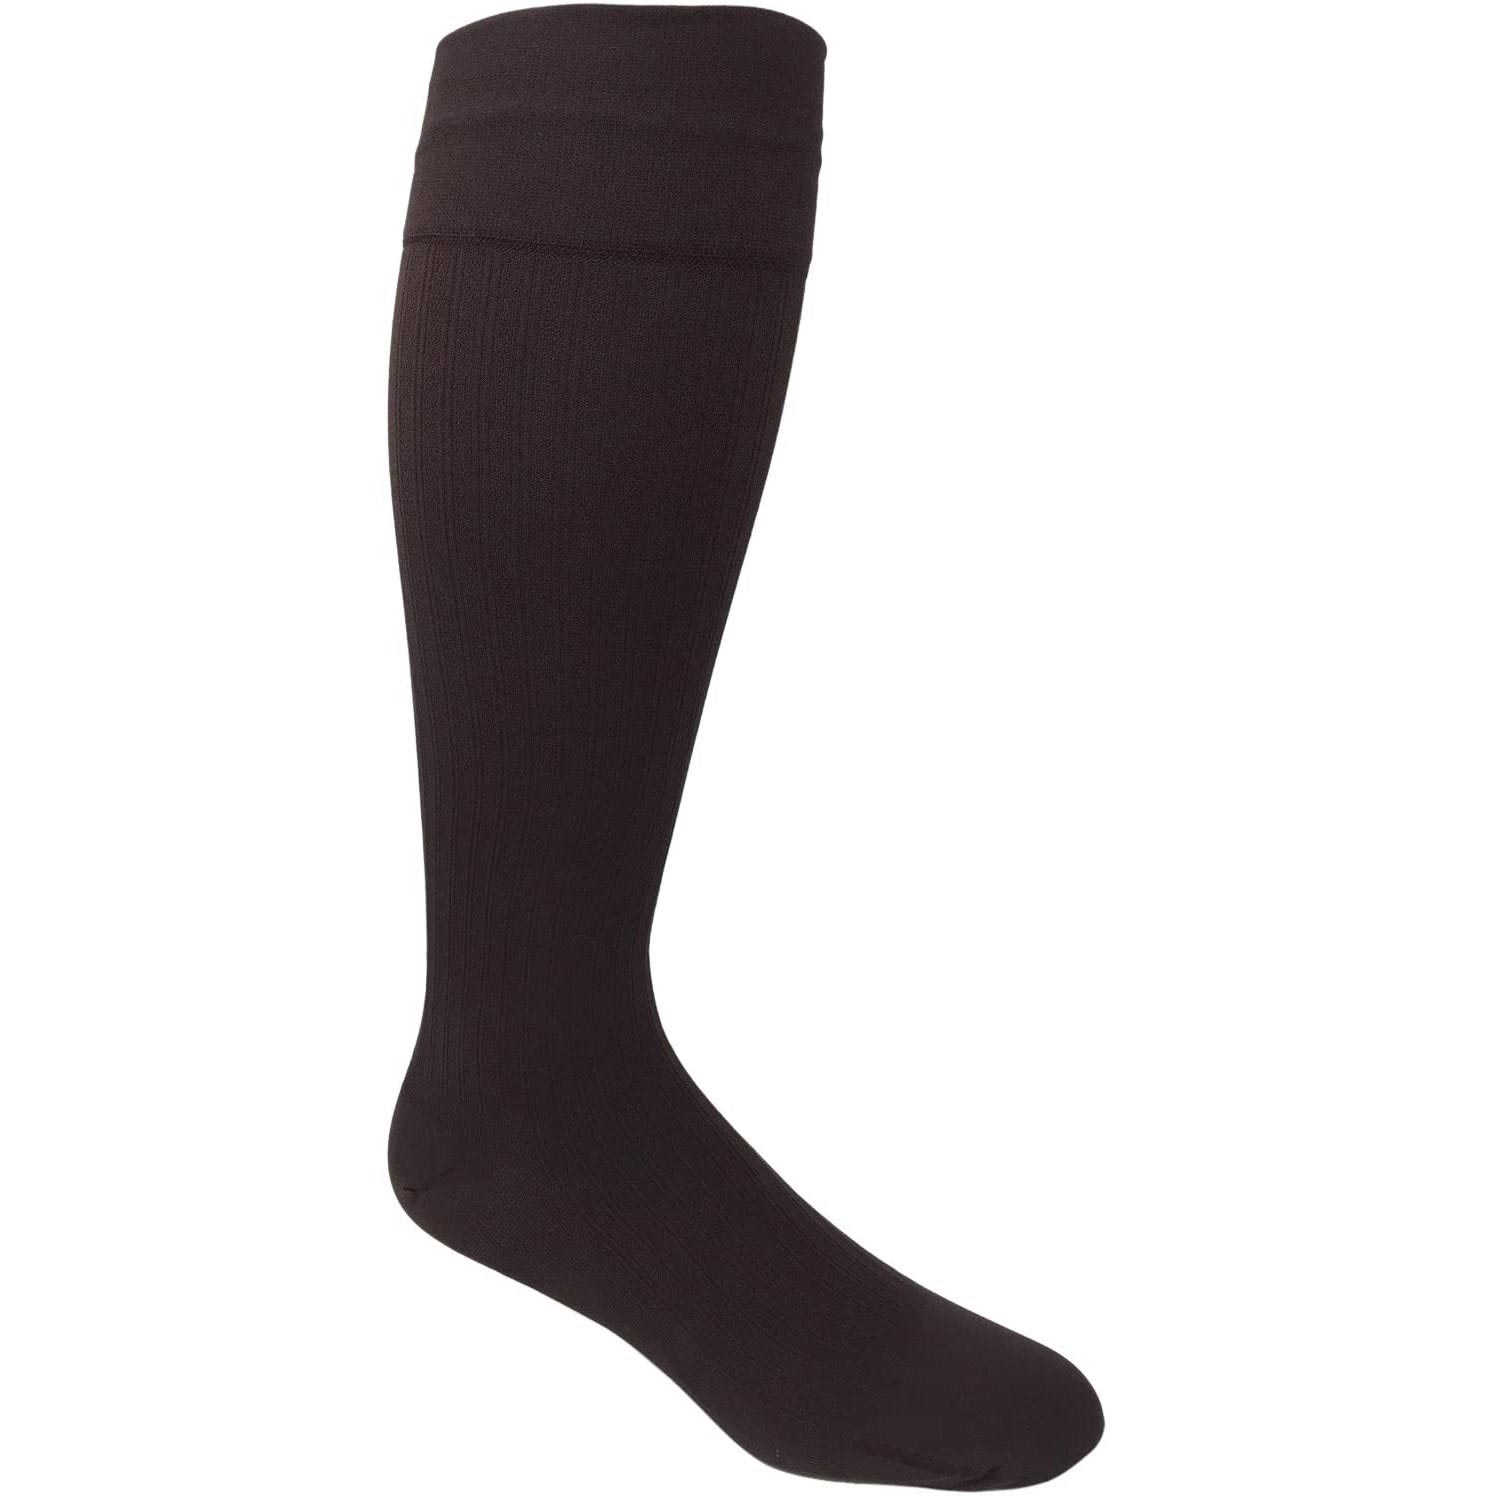 Jobst Knee-High Firm Compression Socks with SoftFit, Long Size 5, Brown